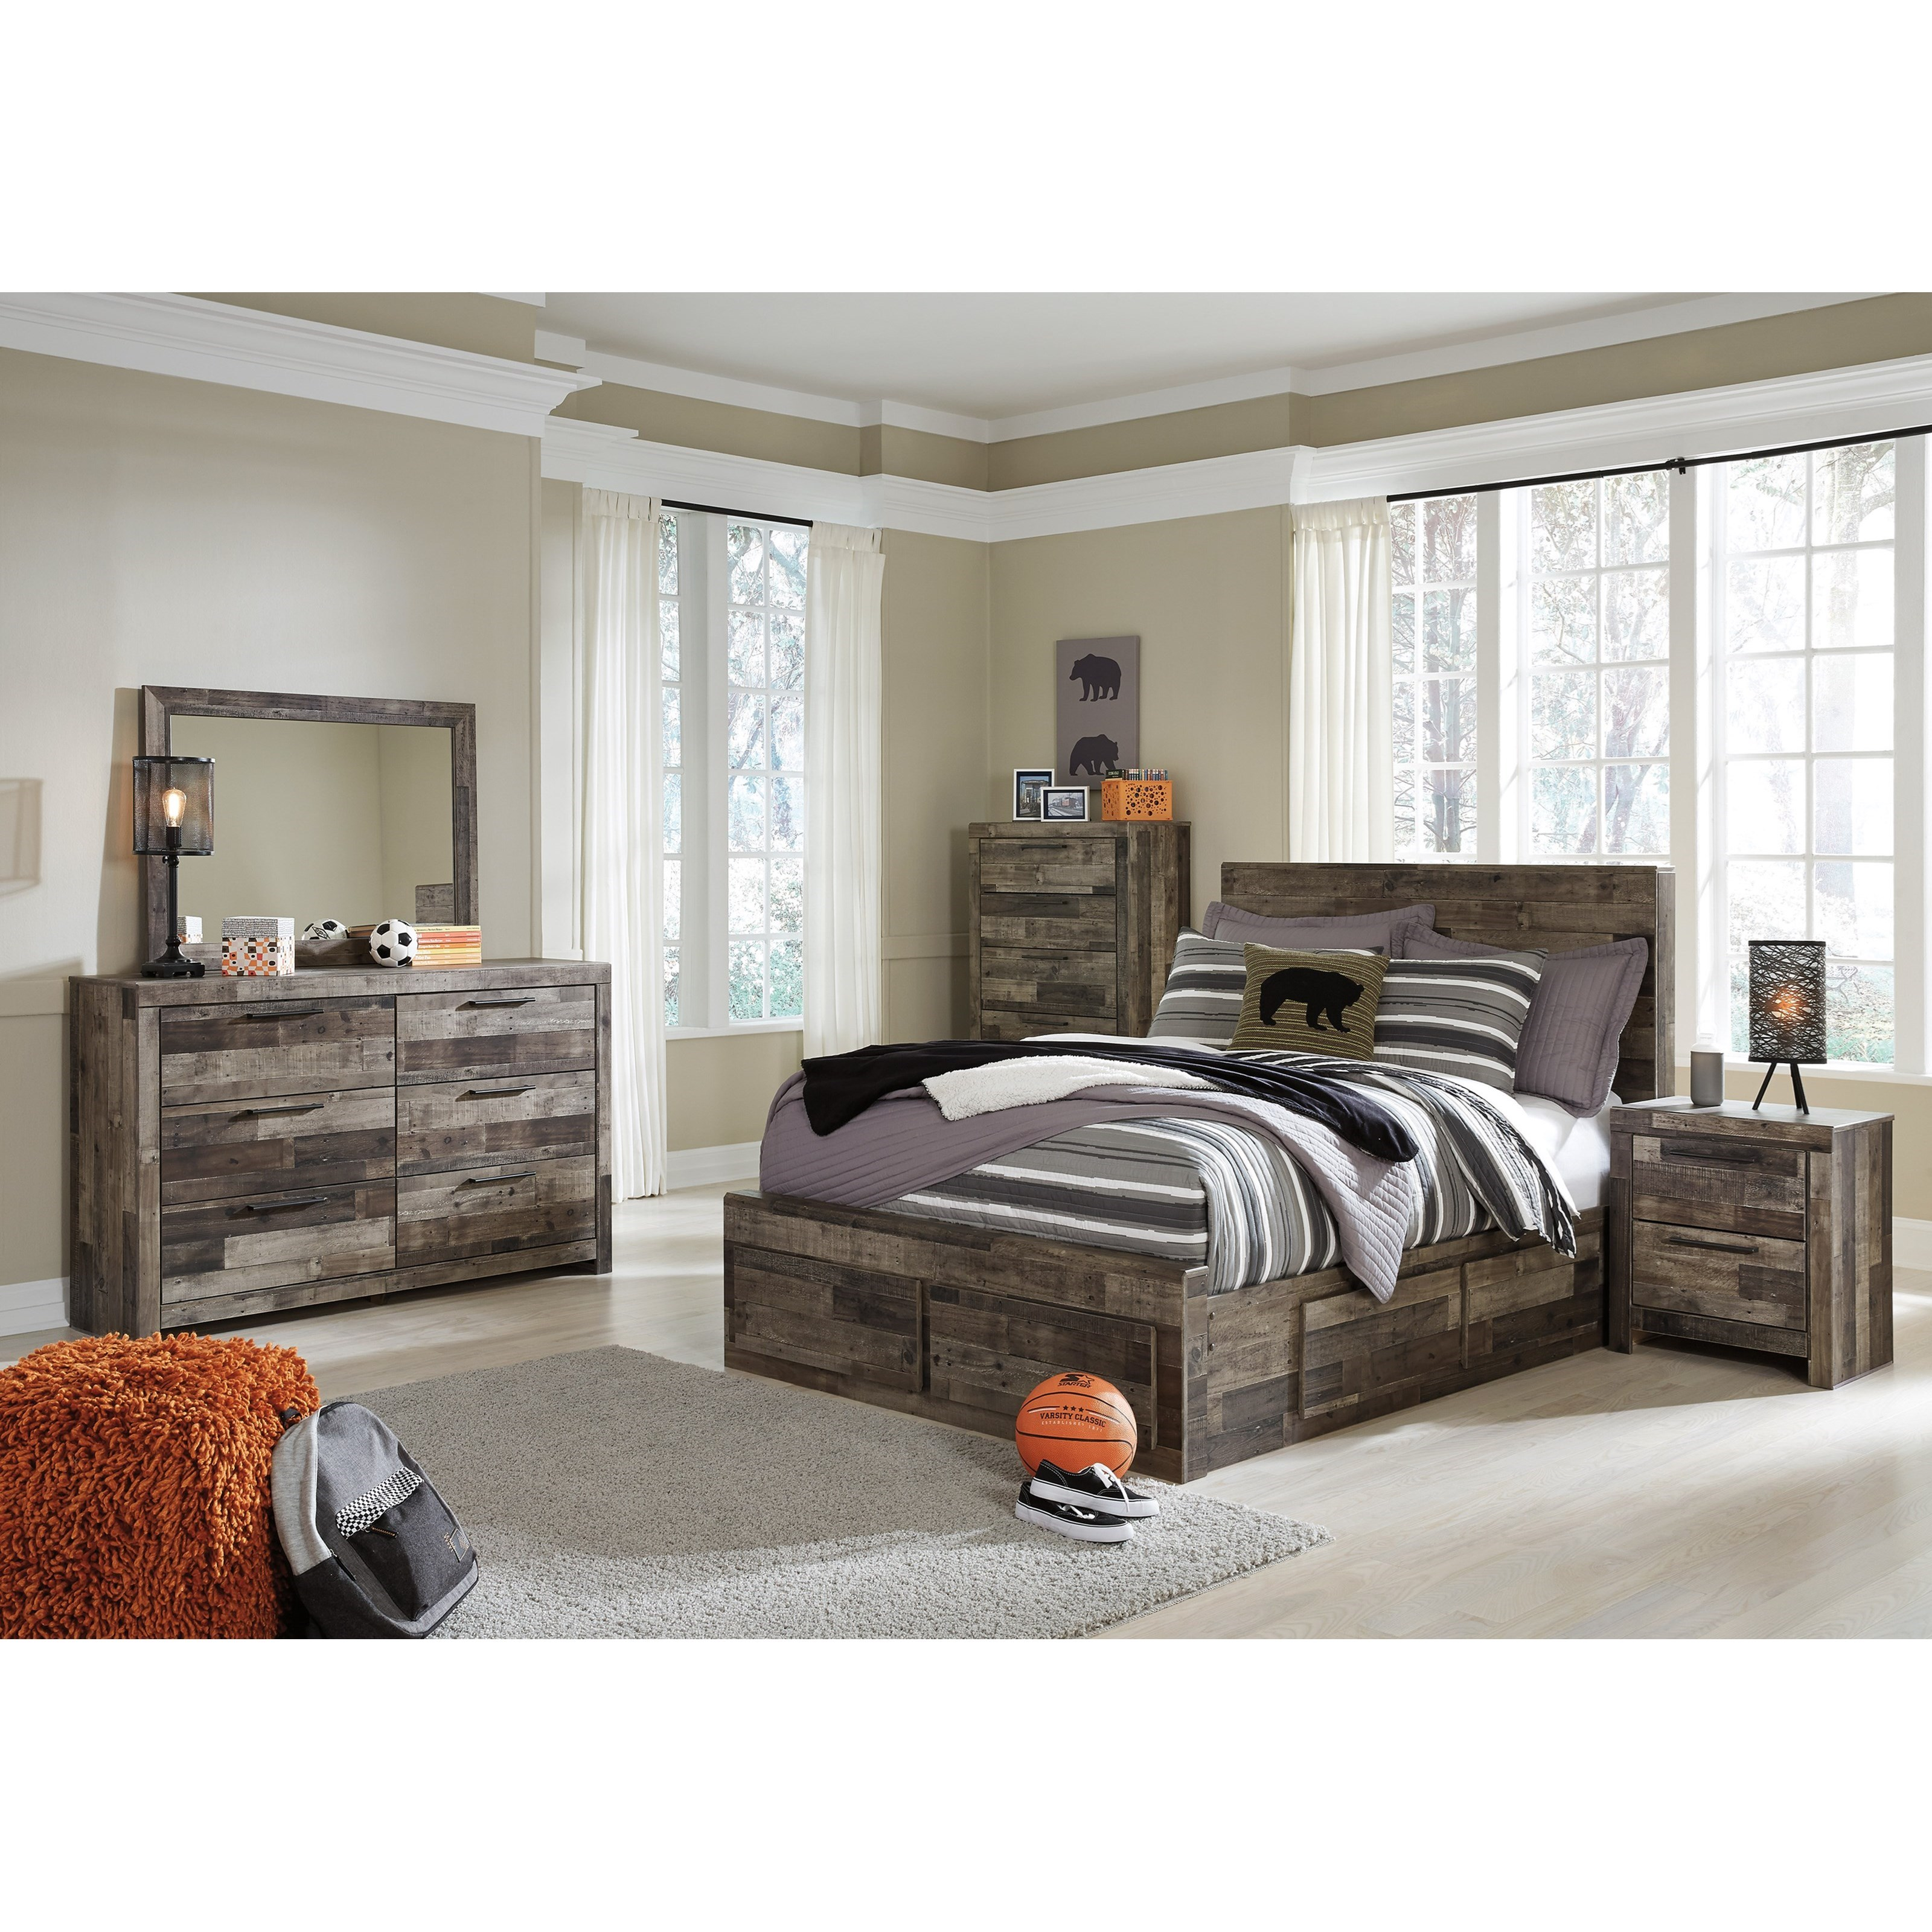 Benchcraft by ashley derekson full bedroom group royal furniture bedroom groups for Ashley bedroom furniture prices